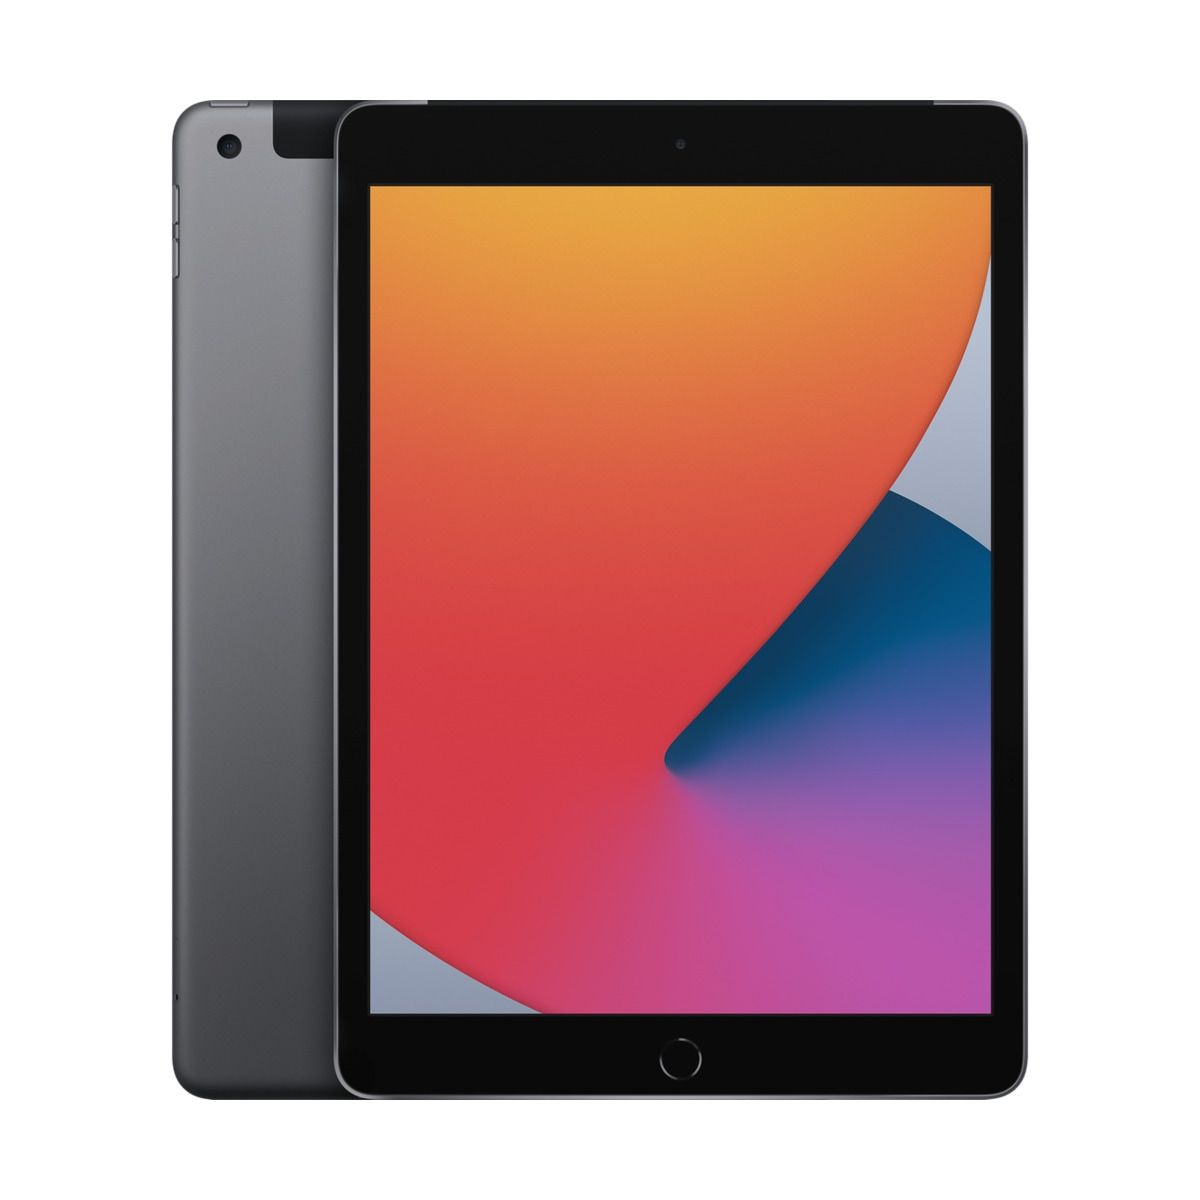 iPad Wi-Fi+Cell 32GB - Space Grey